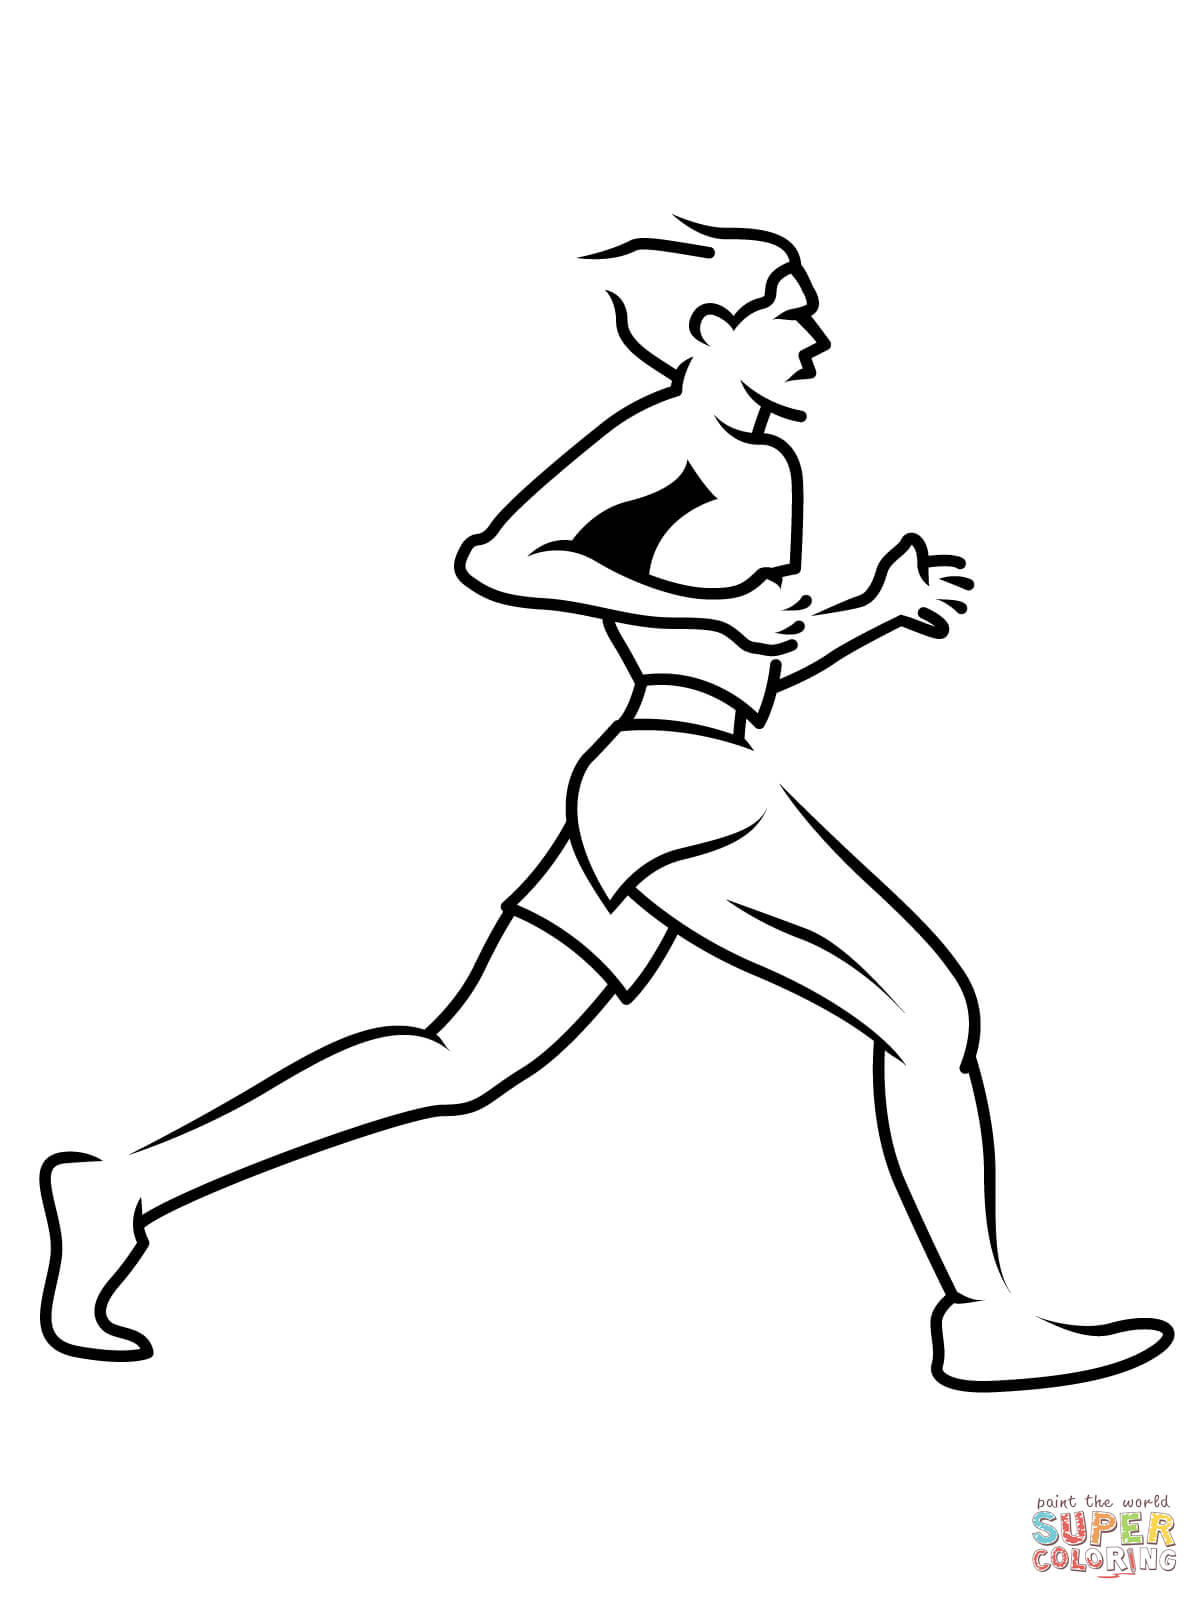 This is a graphic of Modest Track And Field Drawing